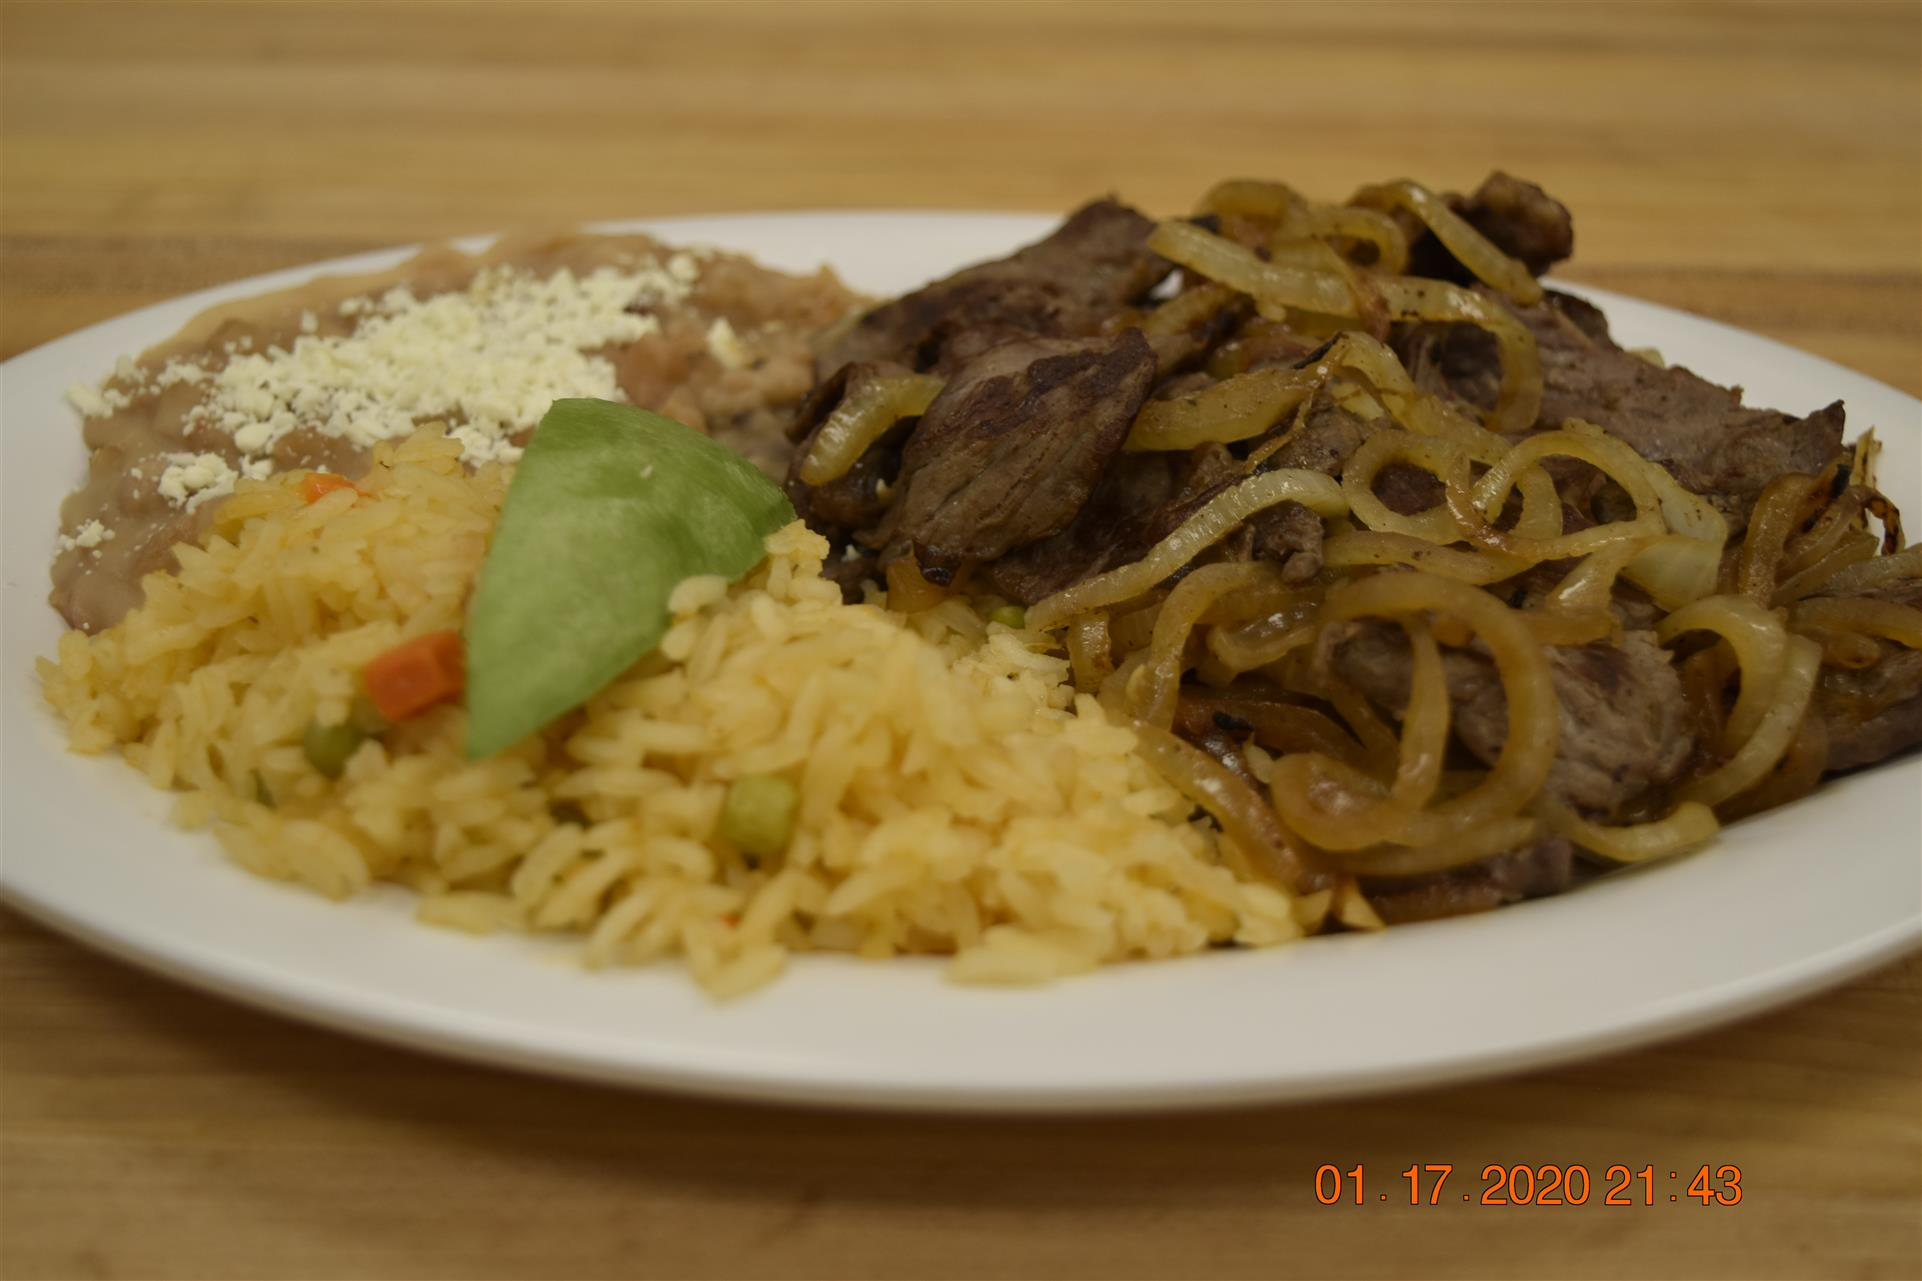 steak with onions, rice and beans